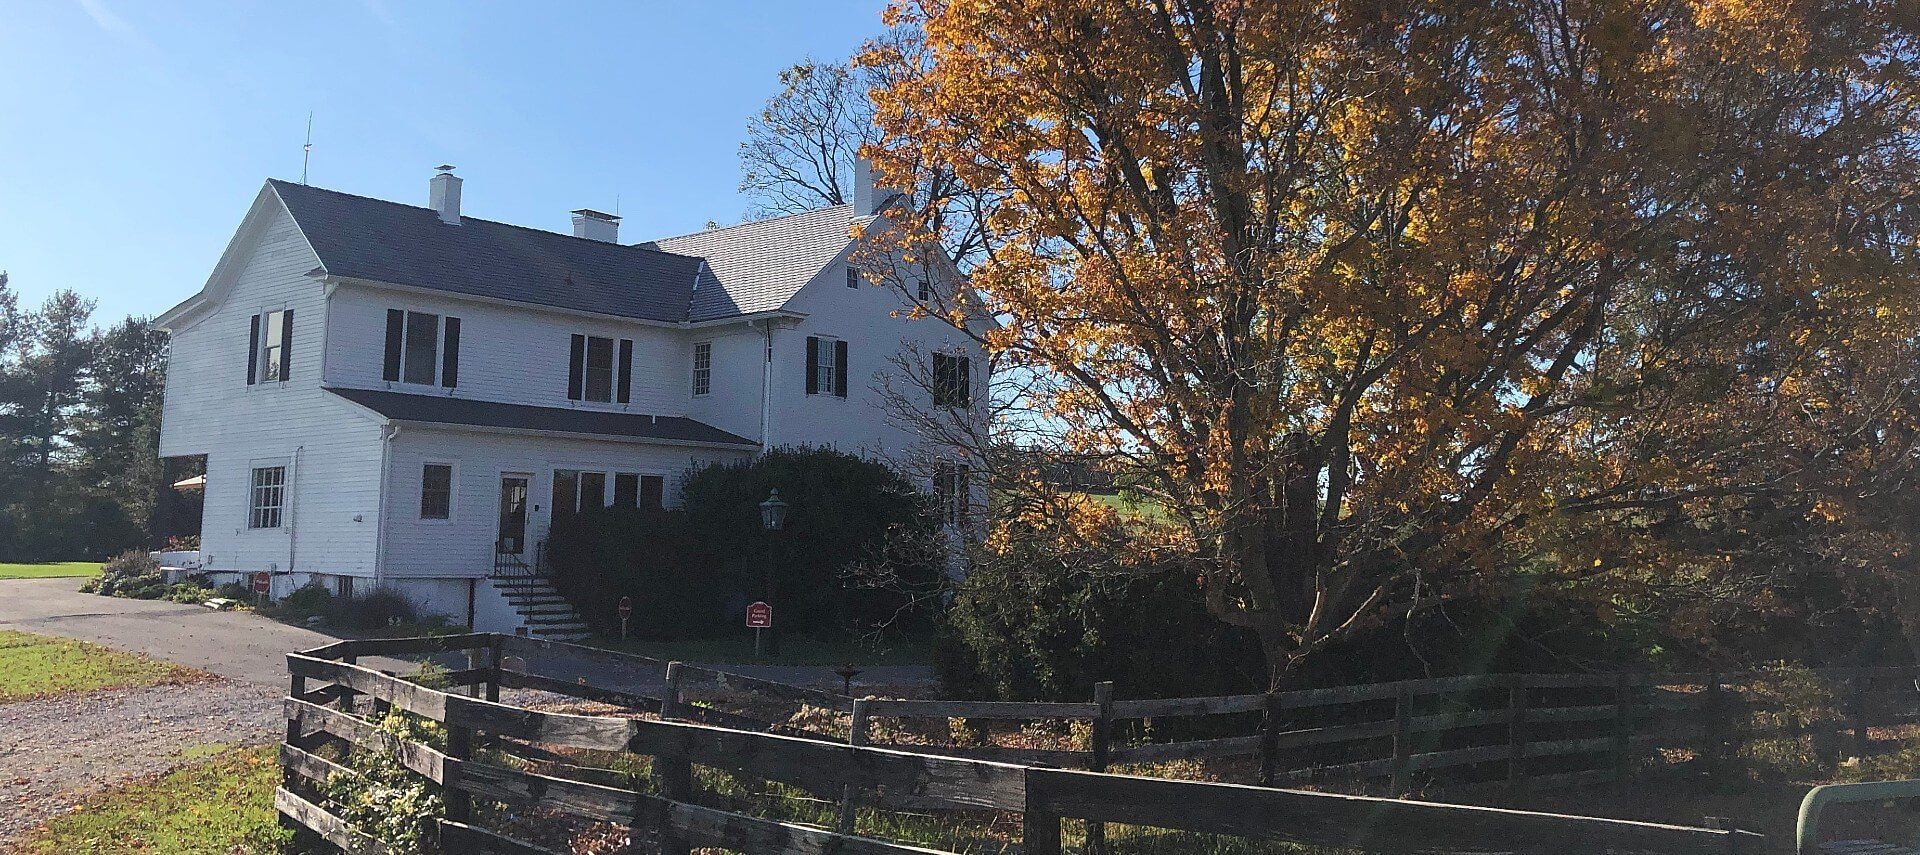 Large white farmhouse next to a fenced yard with tall trees covered in fall leaves